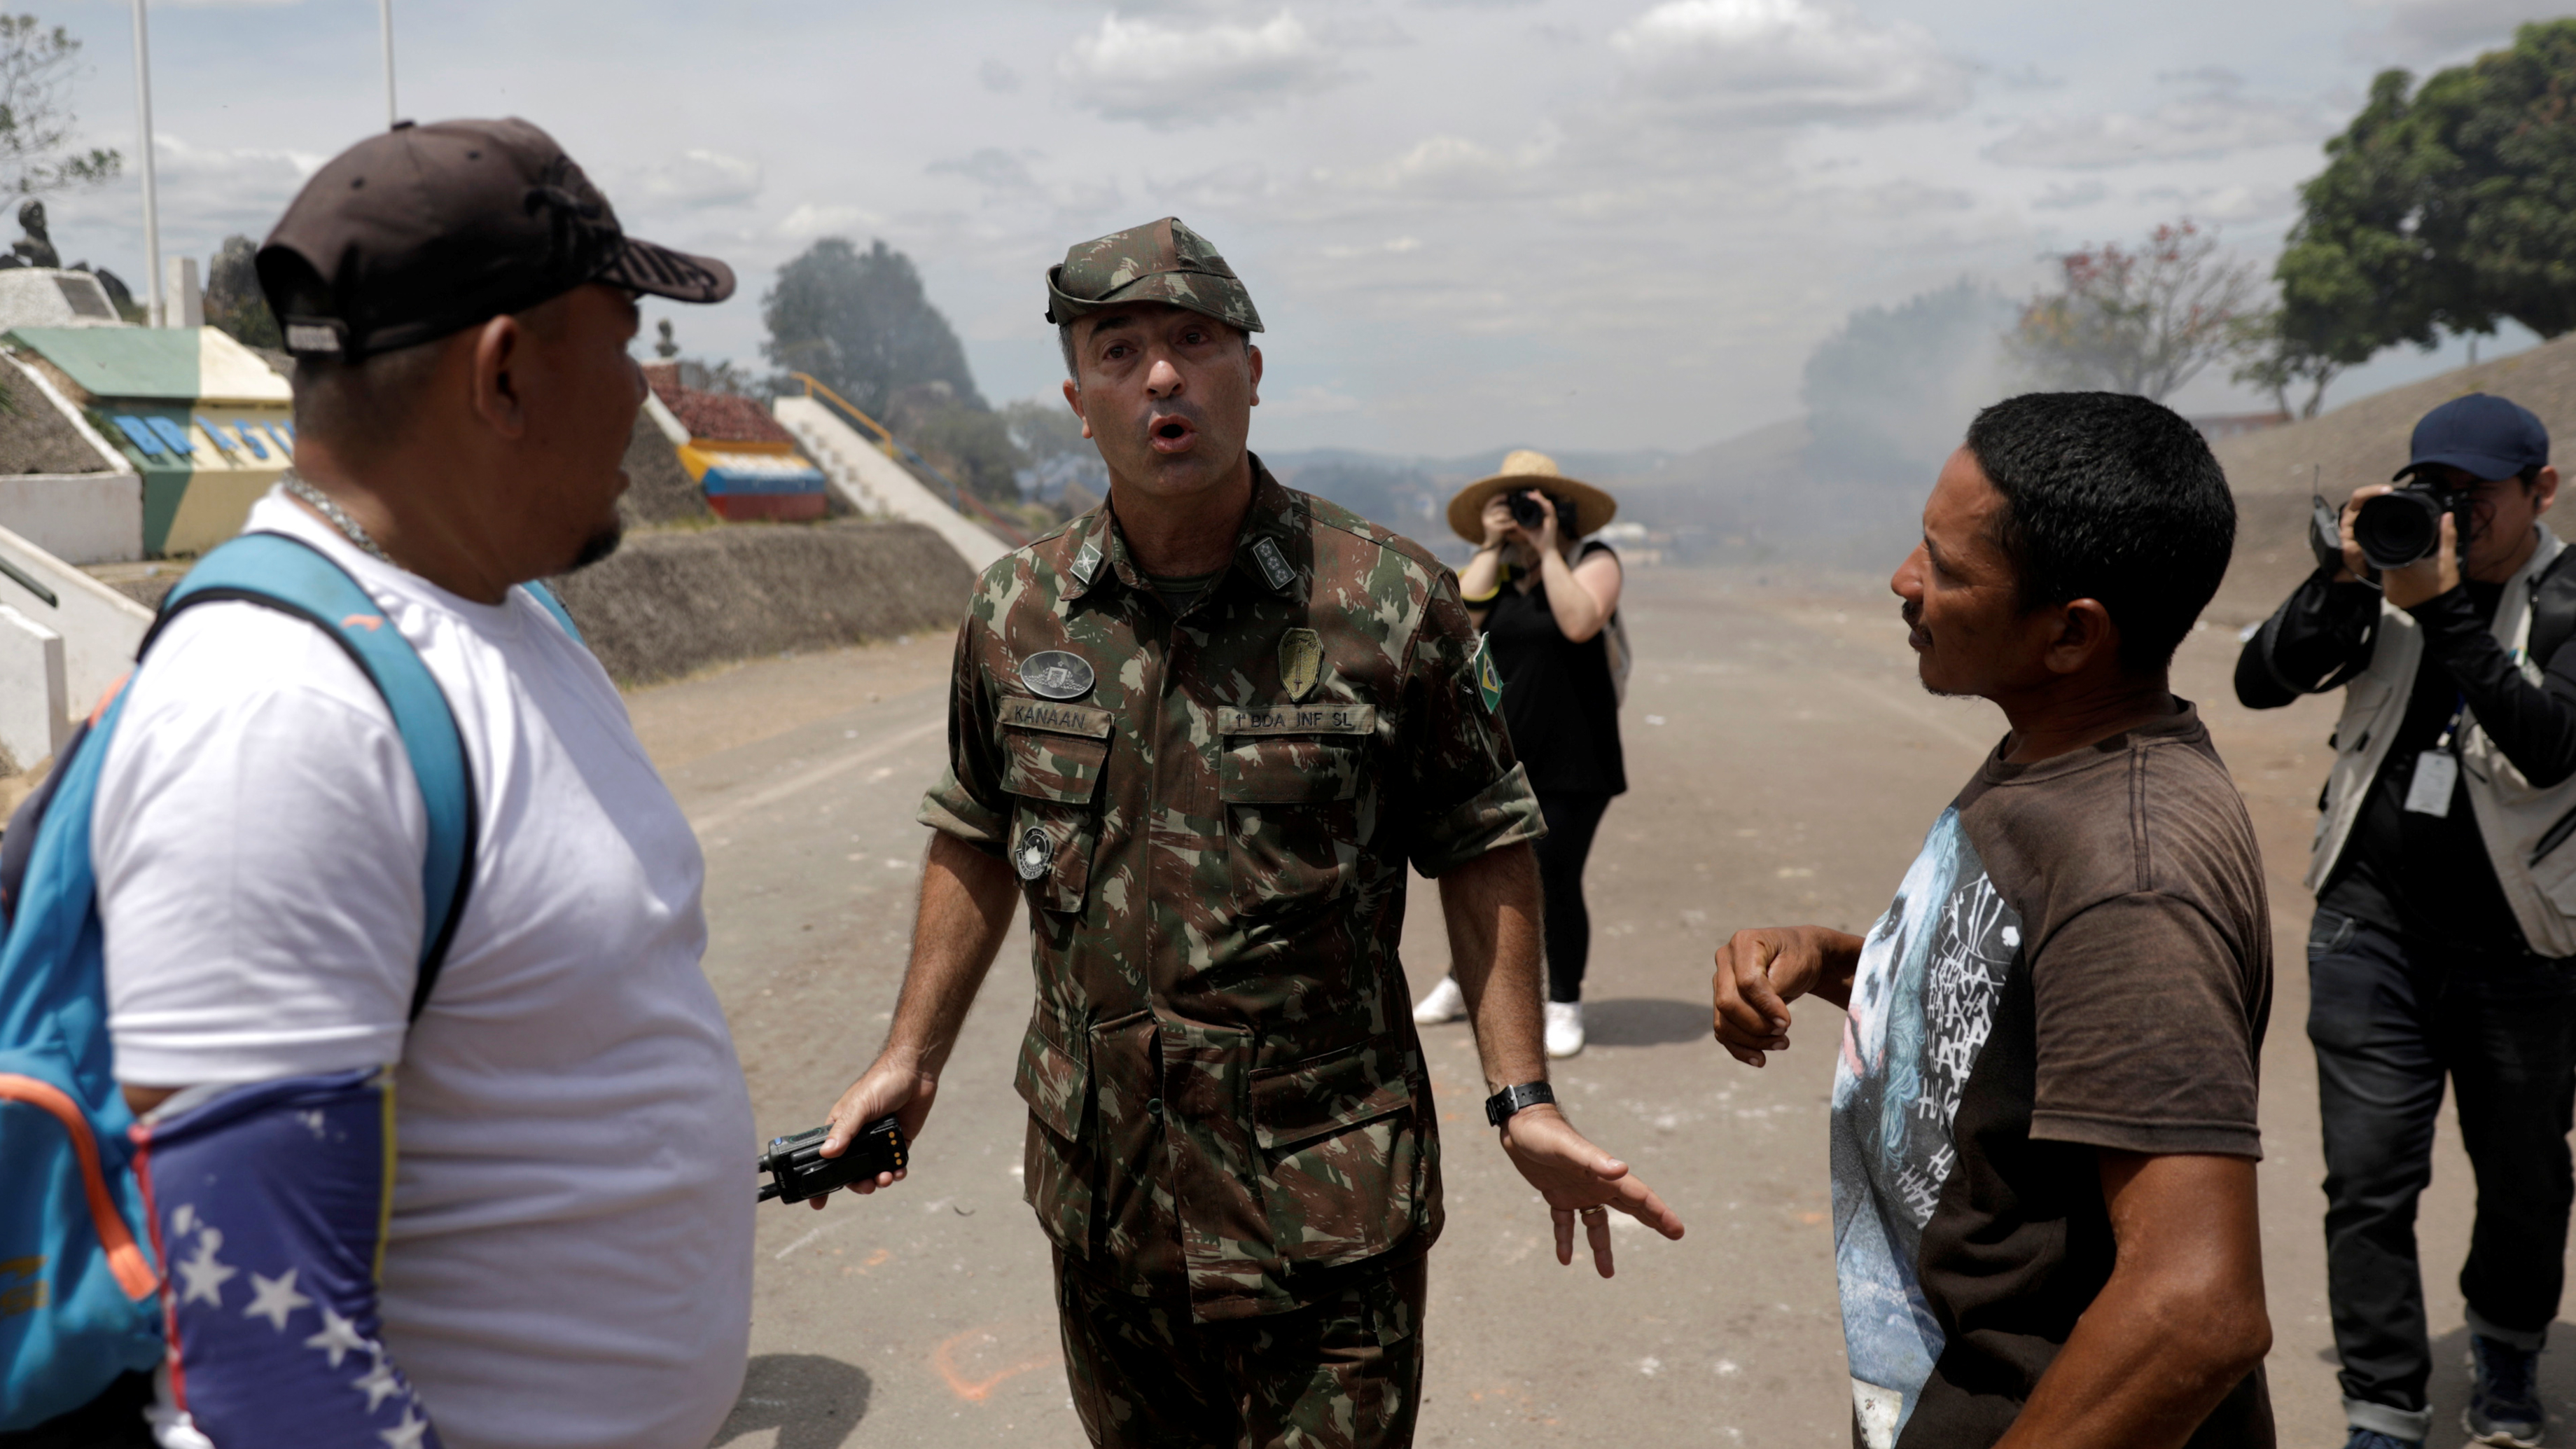 Man in uniform stands between two civilians with gesture of calm.